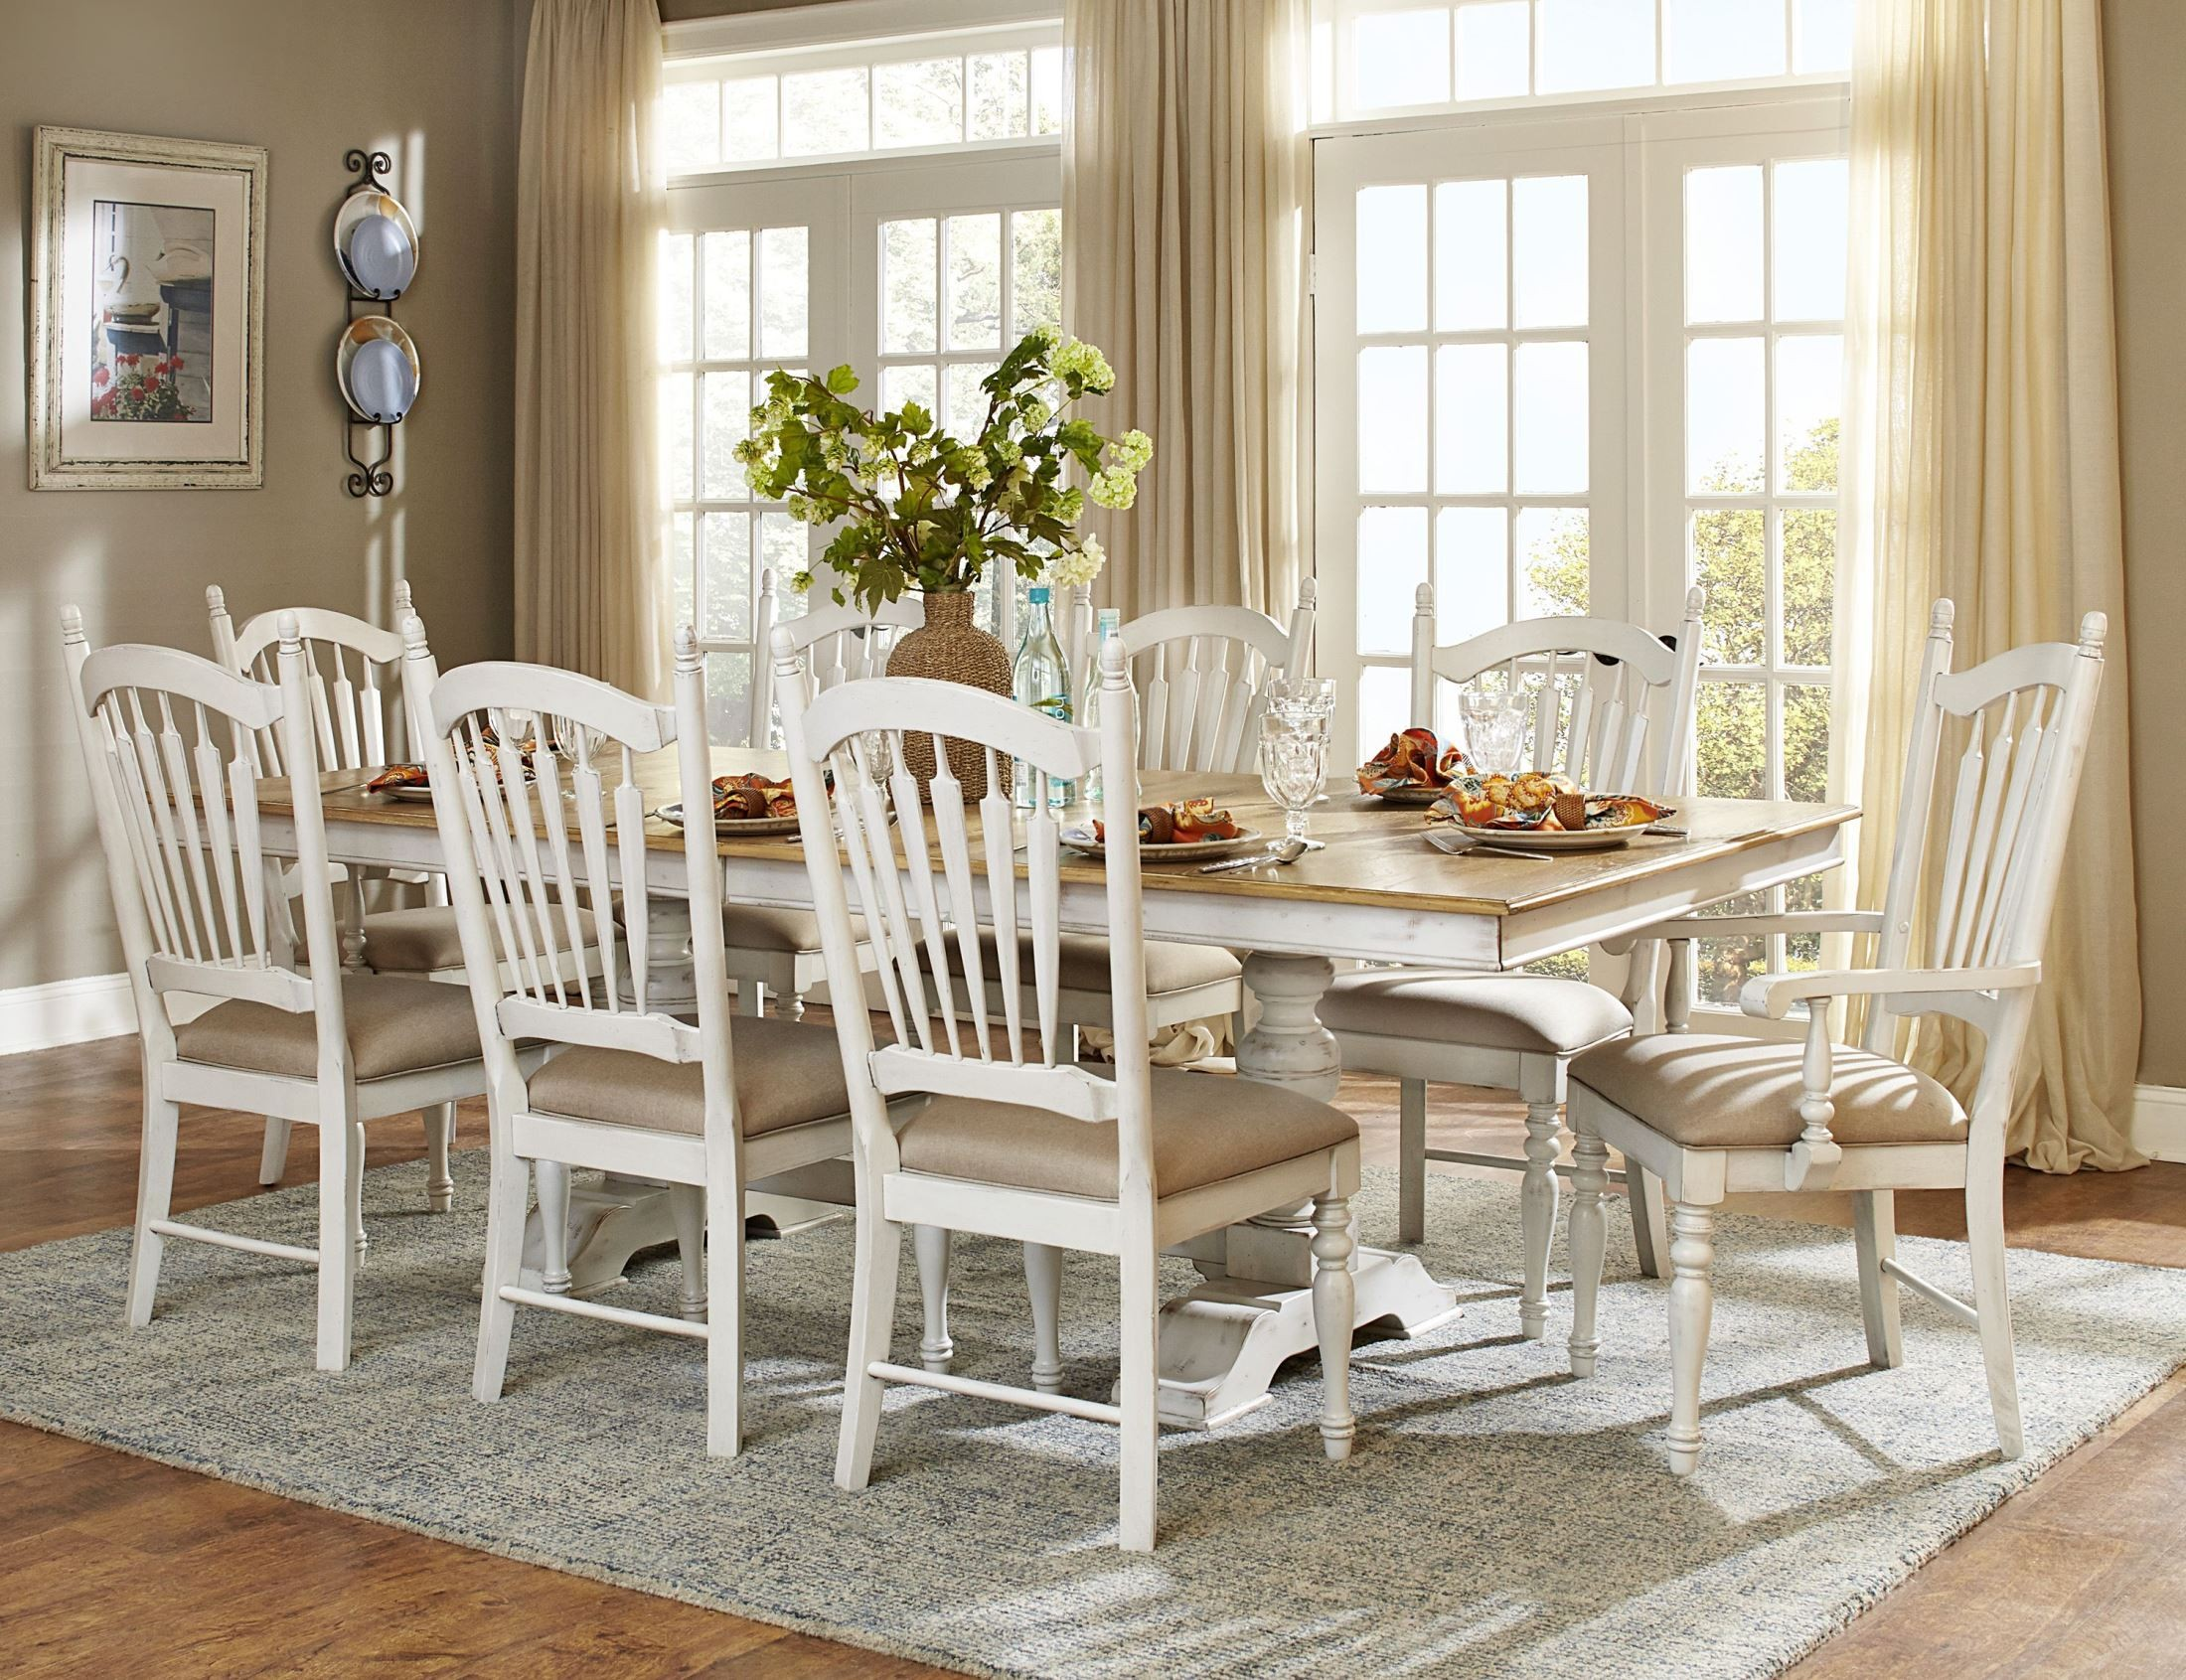 white distressed dining chairs ergonomic chair uplift hollyhock room set from